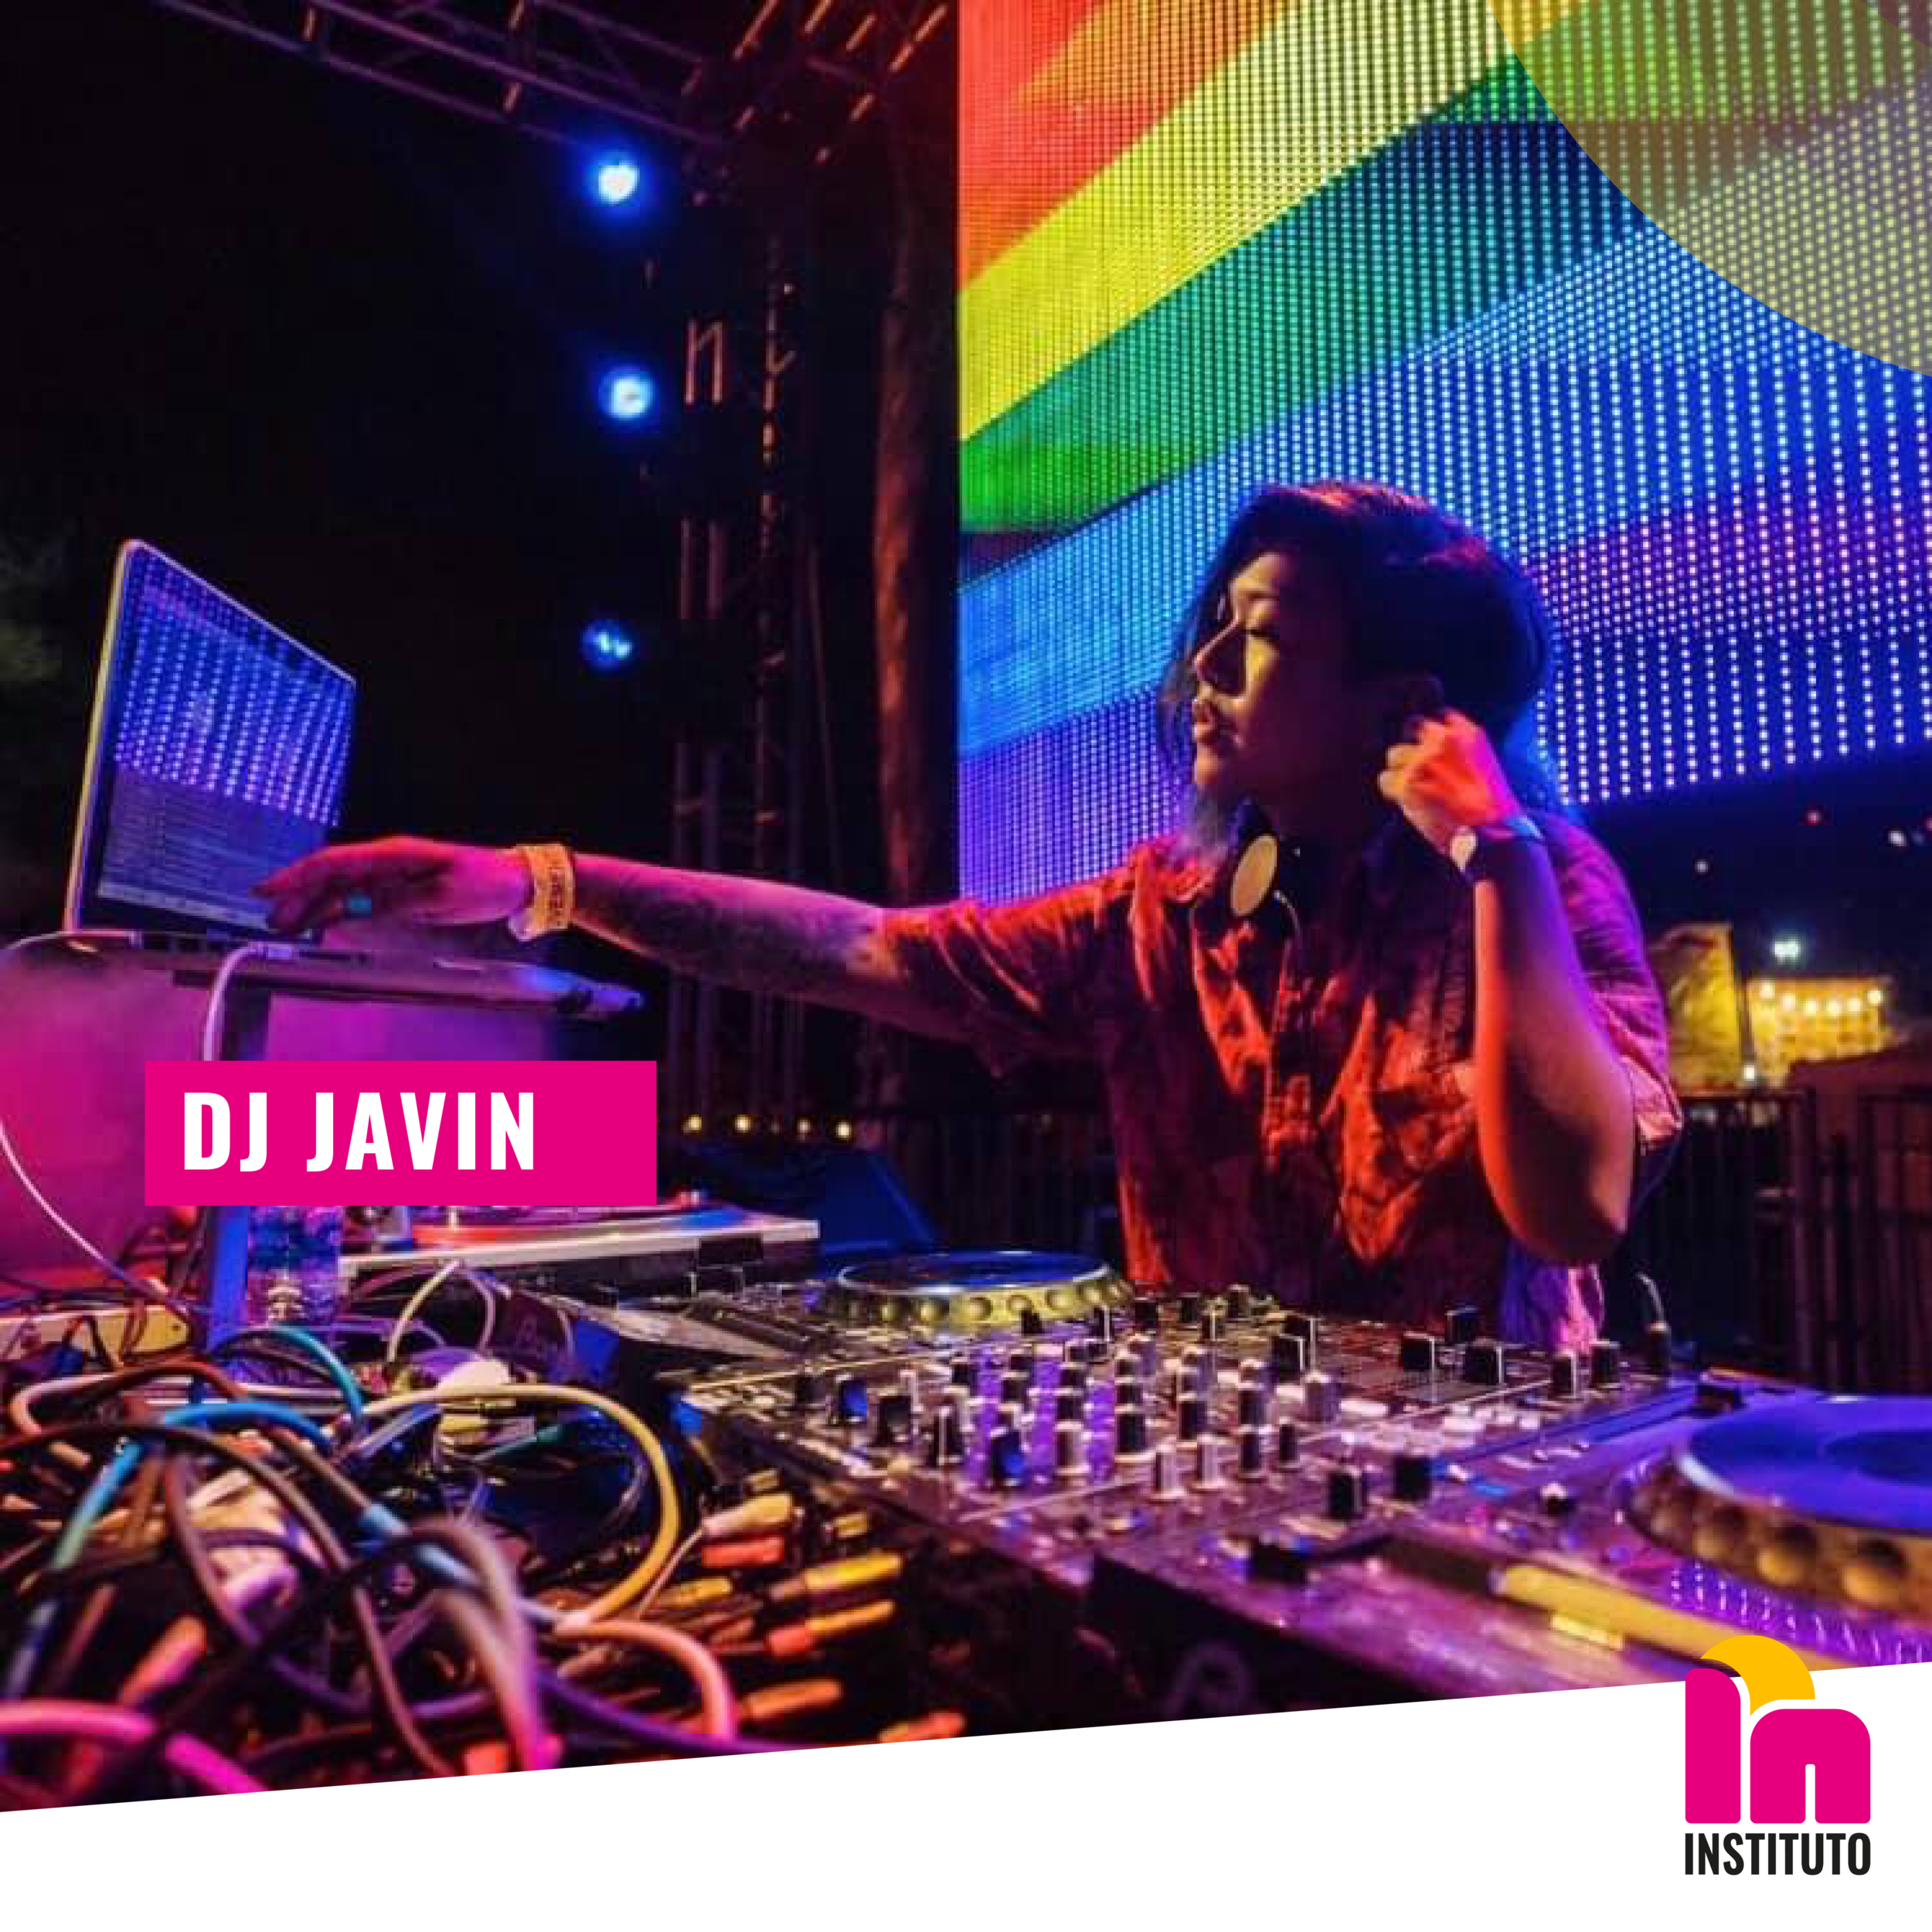 Sway to the rhythm of the beats DJ Javin will be spinning all evening.